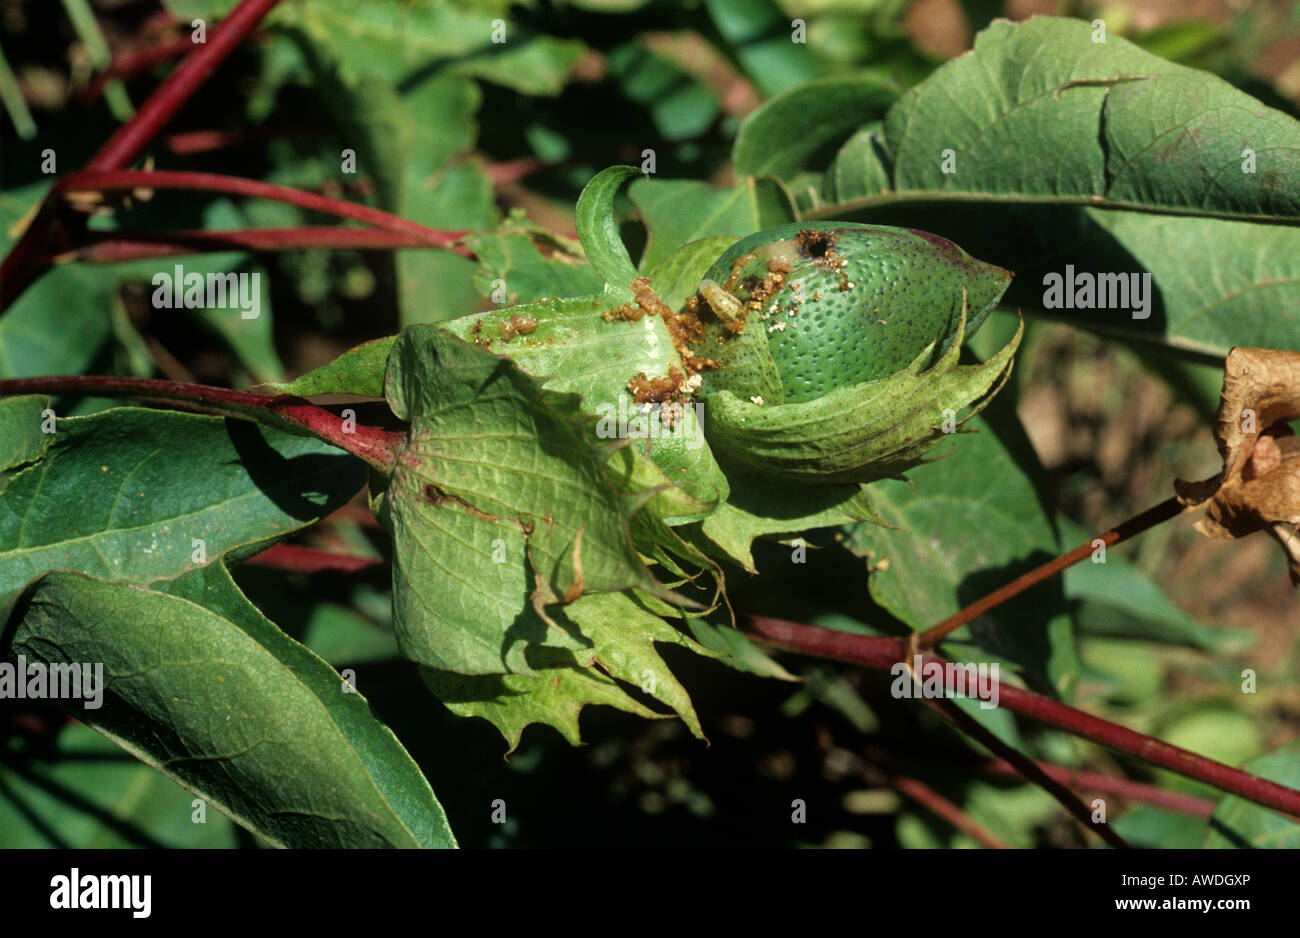 Spiny bollworm Earias insulana caterpillar and damage to cotton boll Morocco - Stock Image